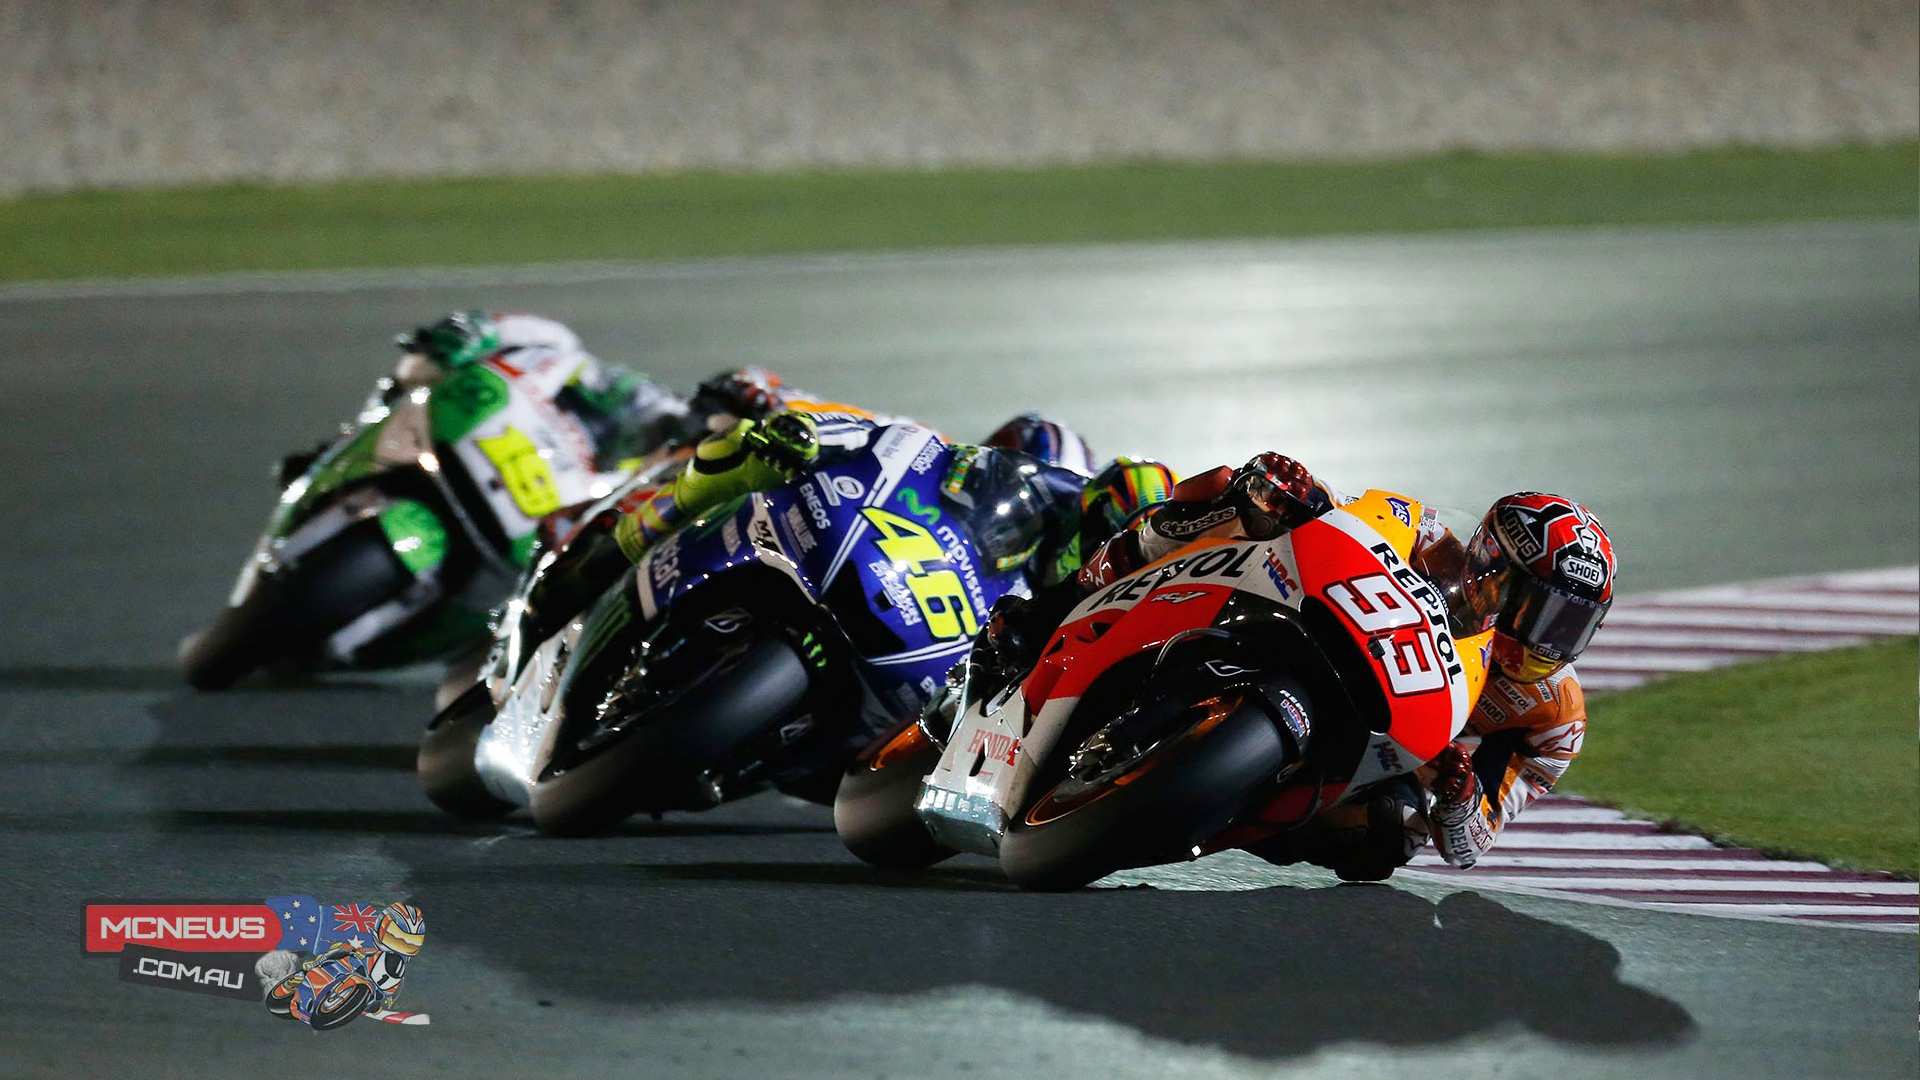 Hd wallpaper valentino rossi - Hd Motogp Wallpaper Wallpapersafari